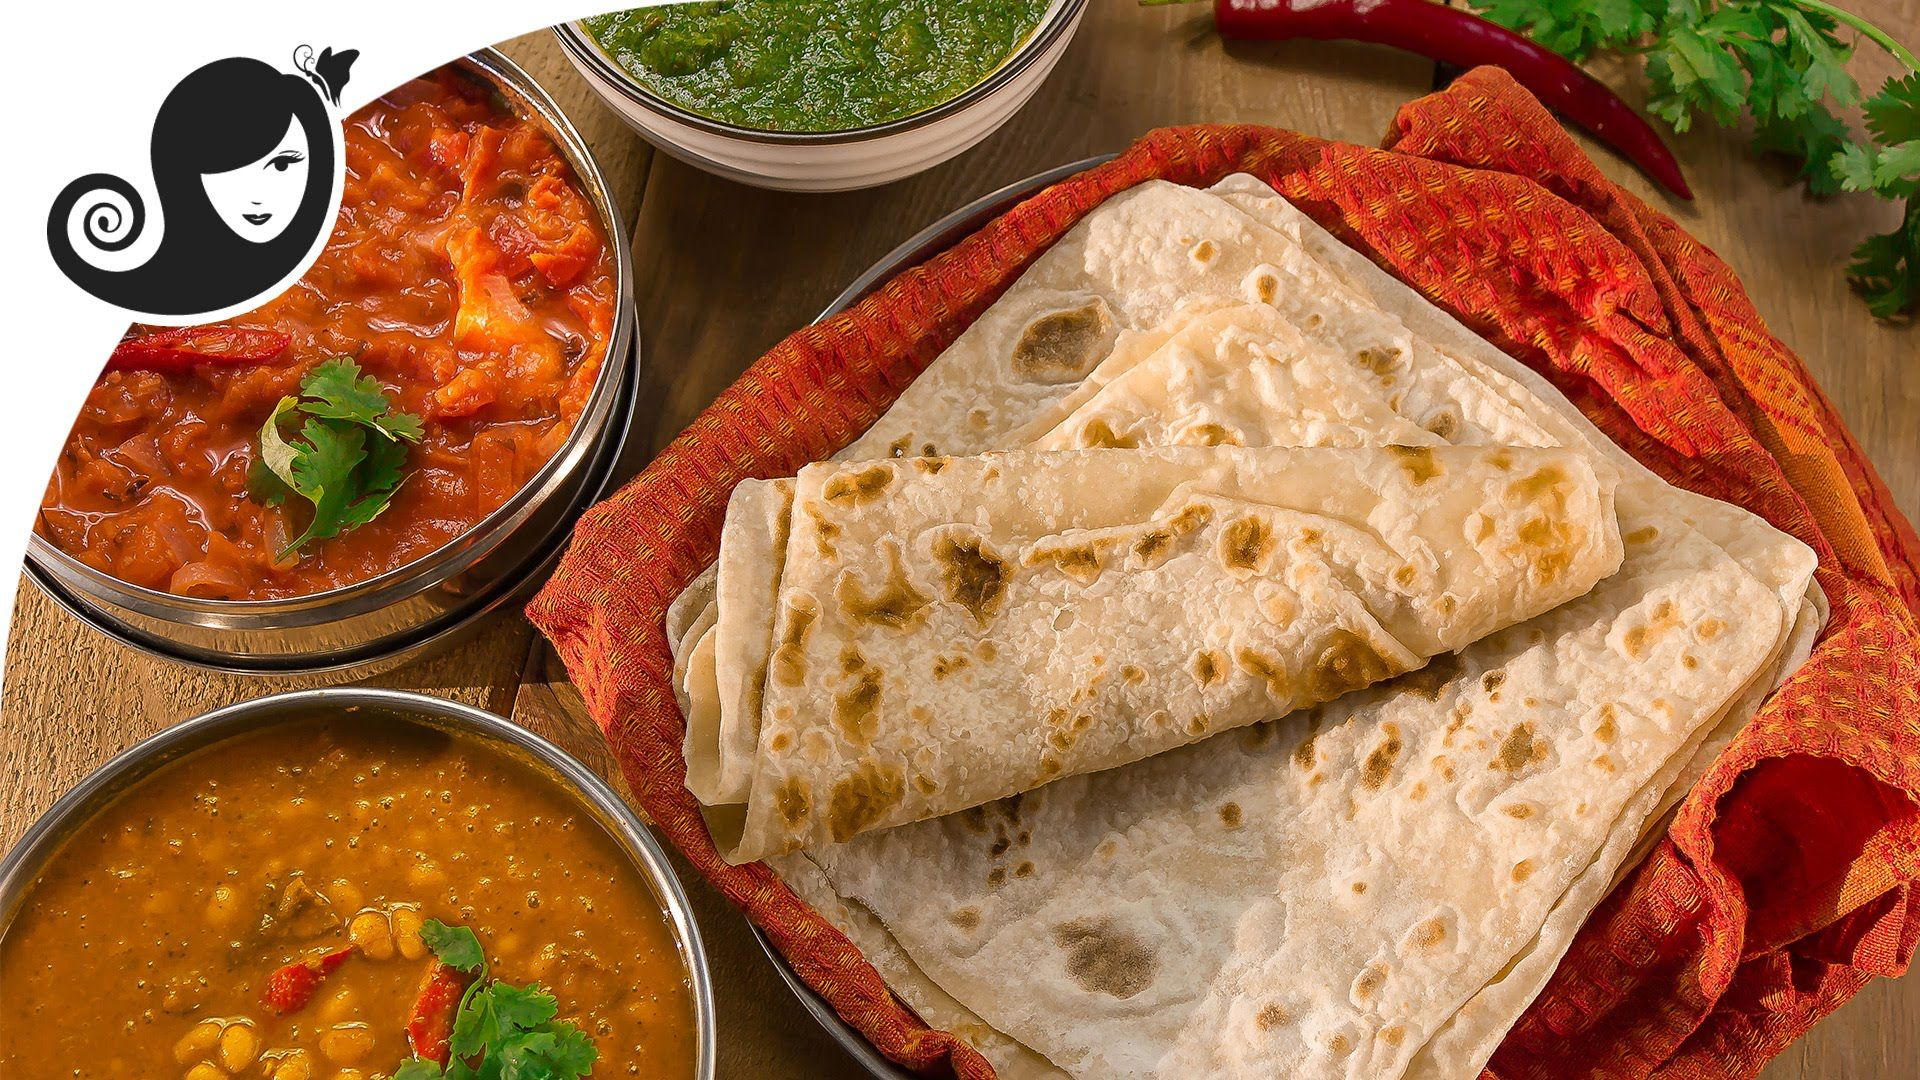 Roti fillings 1 3 oil free roti farata or paratha - Mauritian cuisine 100 easy recipes ...